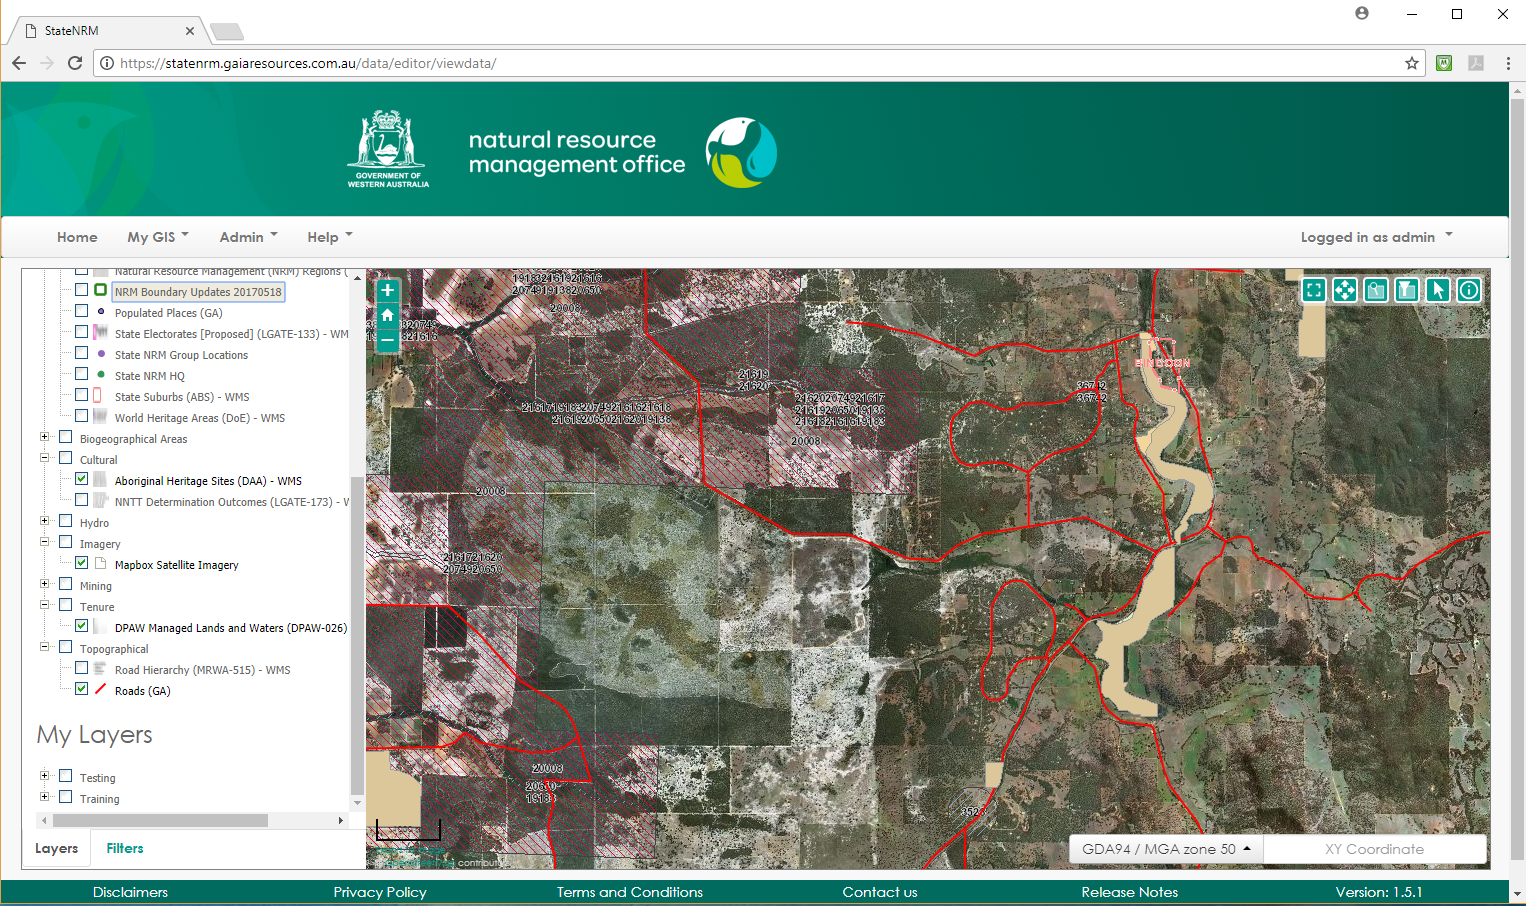 Map Grid Of Australia Zone 50.Grid Enhancements Statenrm Capability Grant Gaia Resources